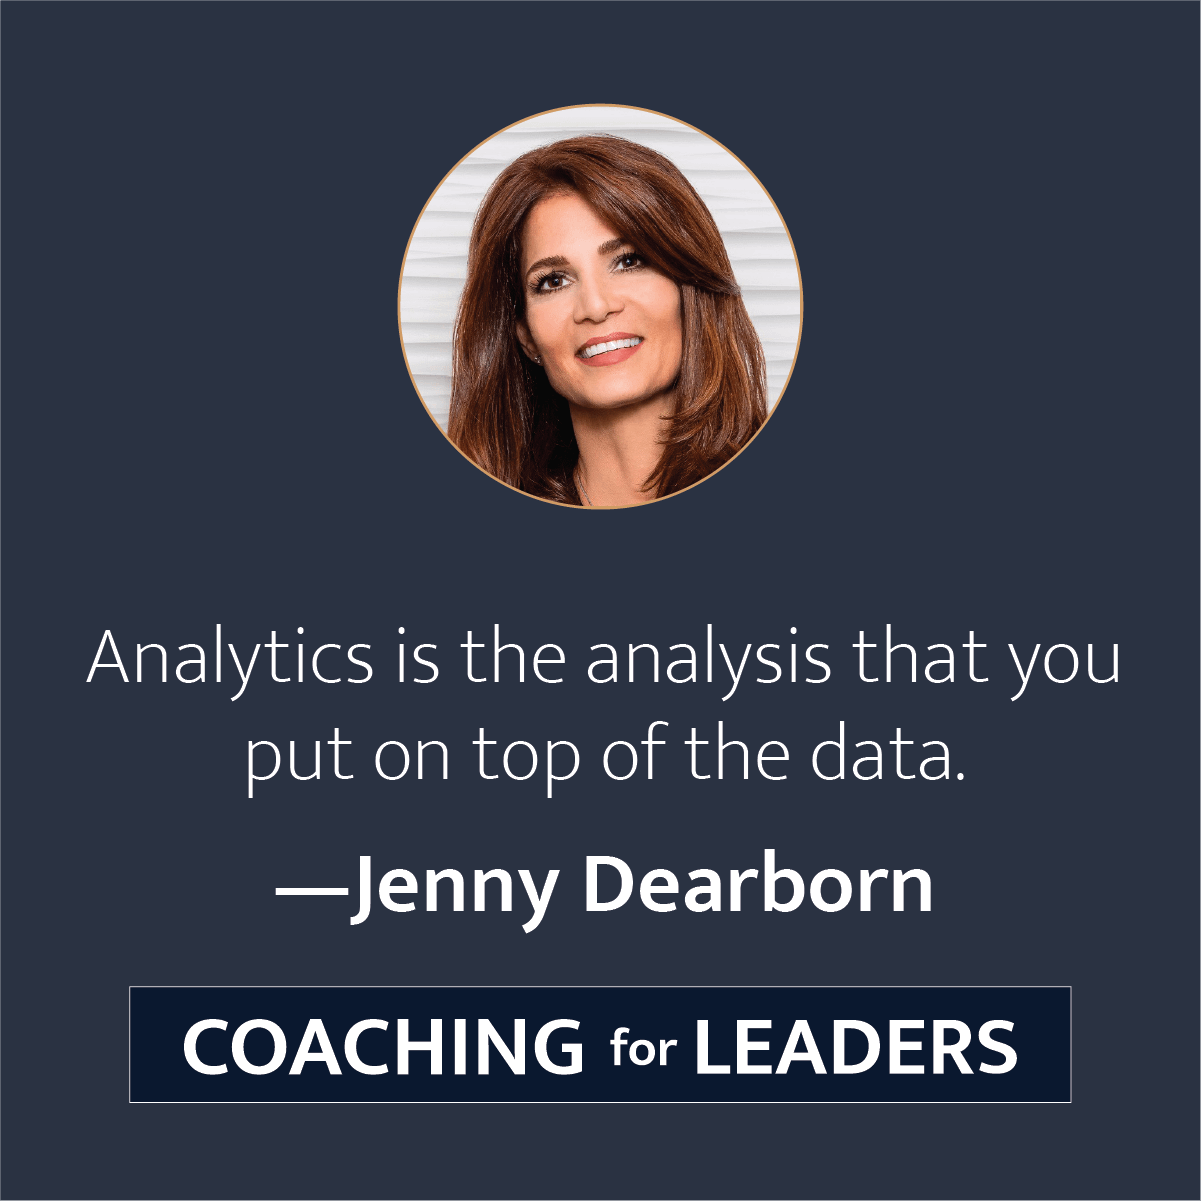 Analytics is the analysis that you put on top of the data.